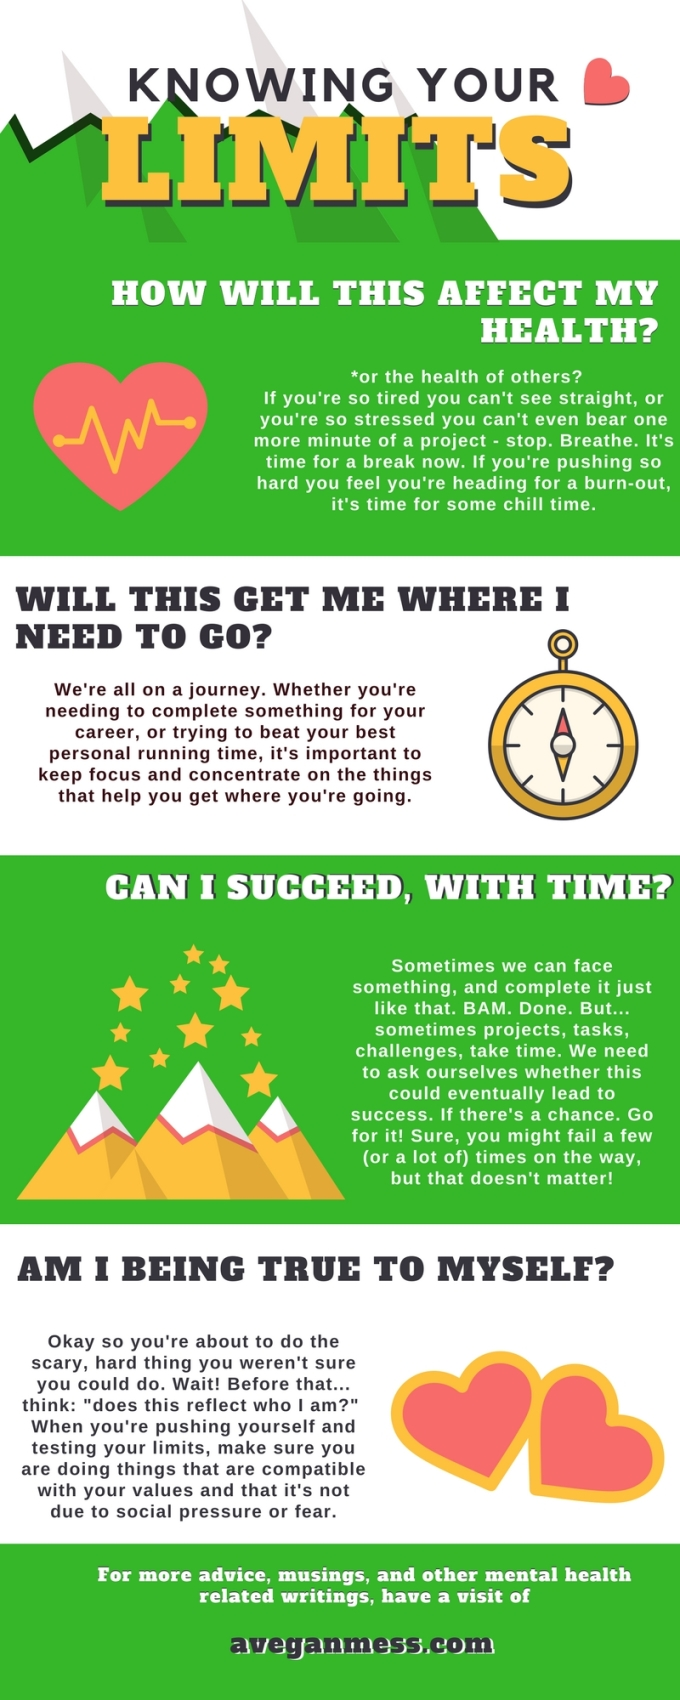 Knowing your limits infographic